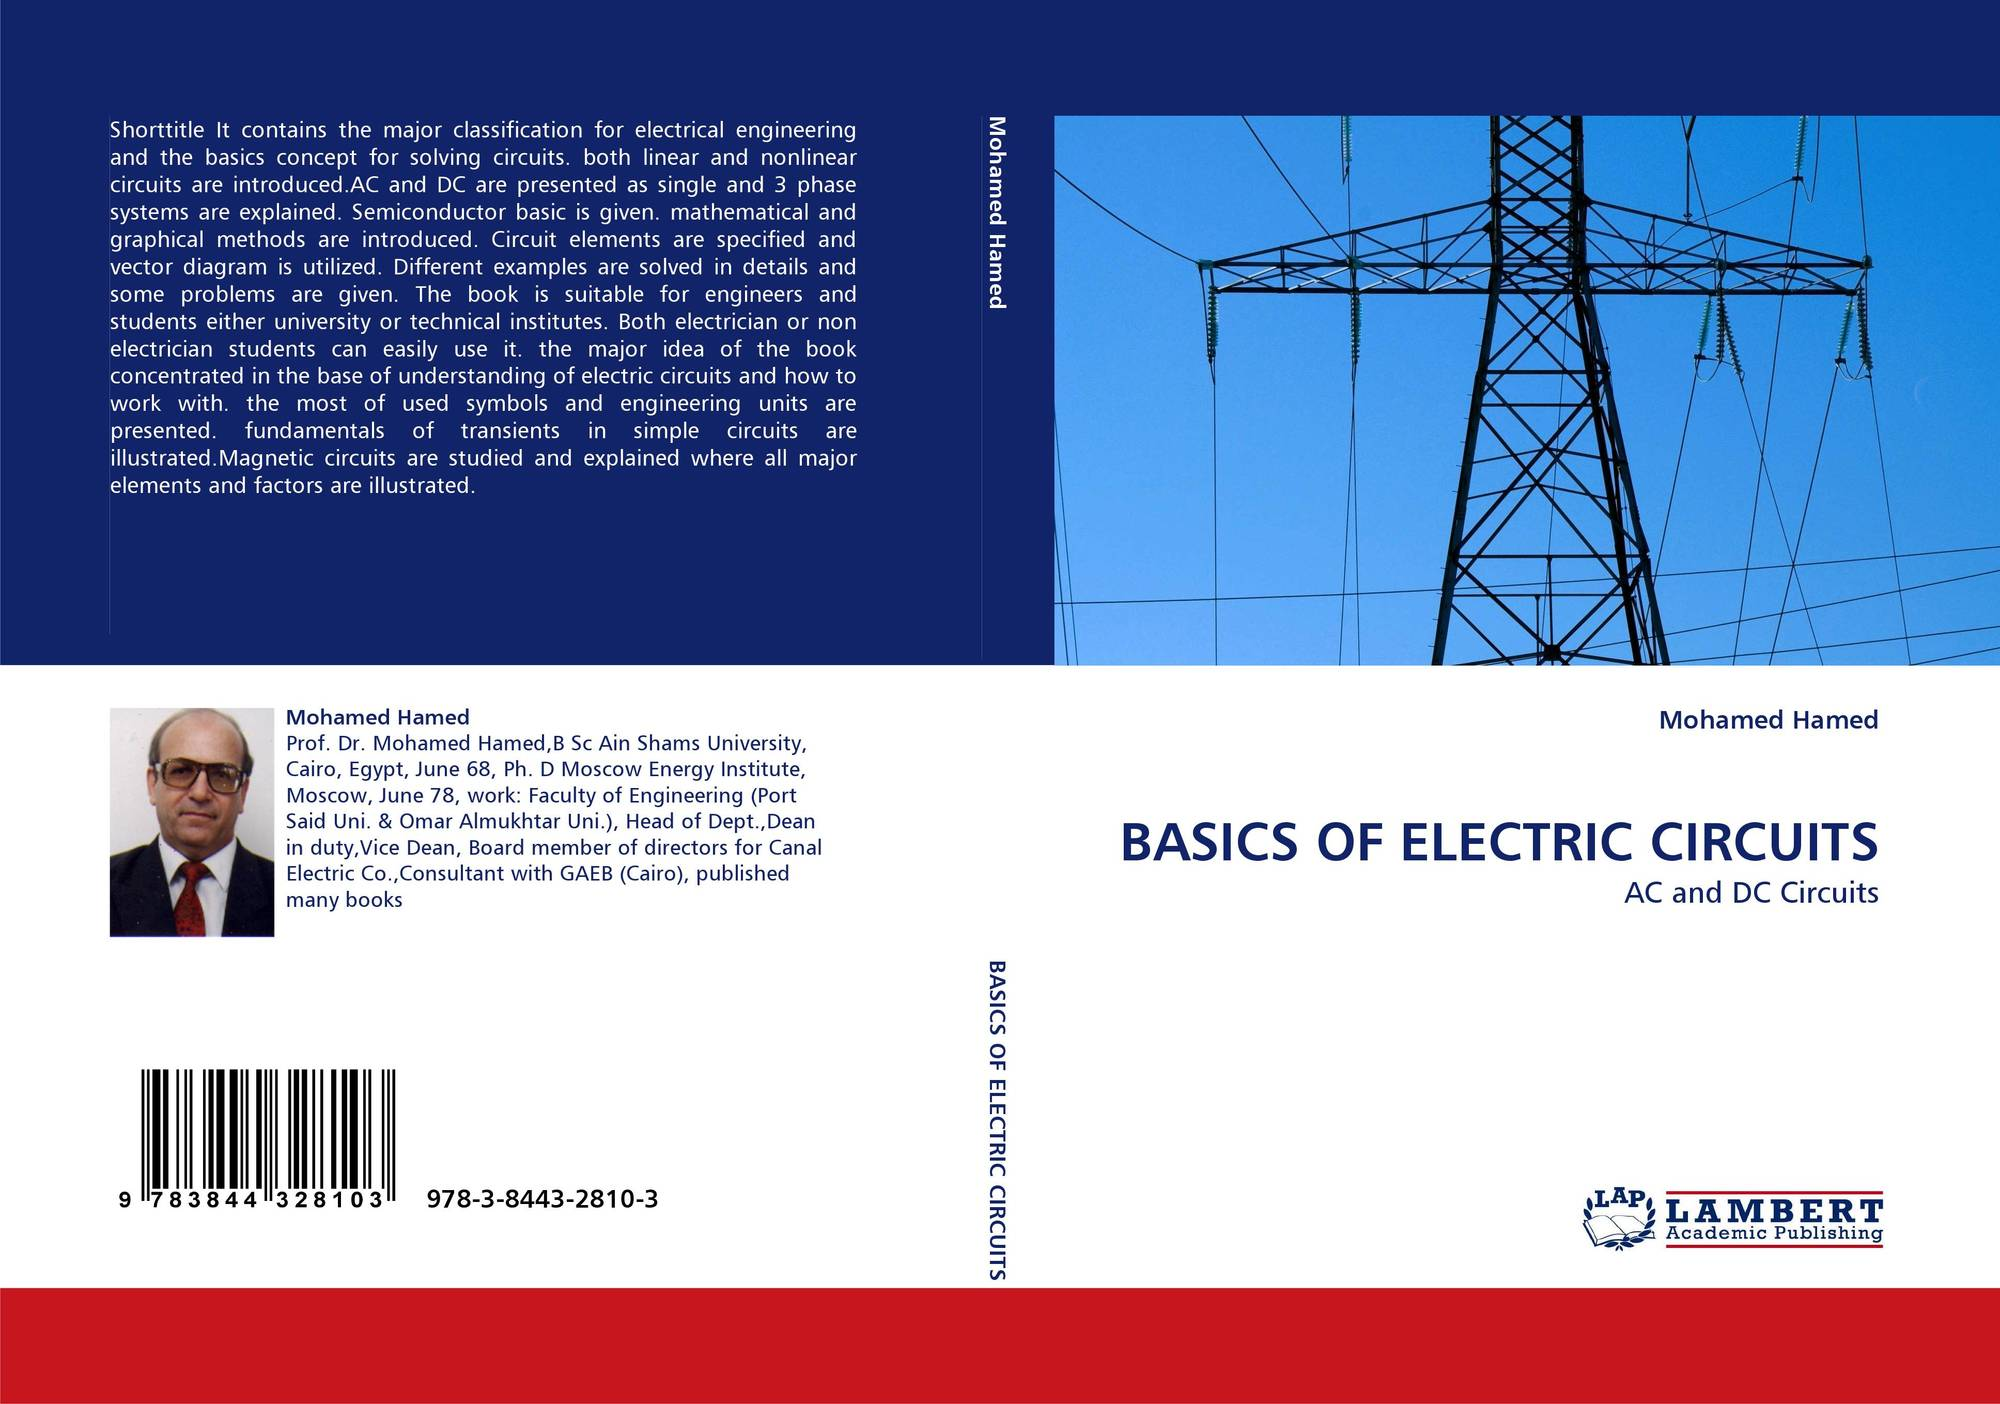 Basics Of Electric Circuits 978 3 8443 2810 3844328106 How Does Circuit Work Bookcover 9783844328103